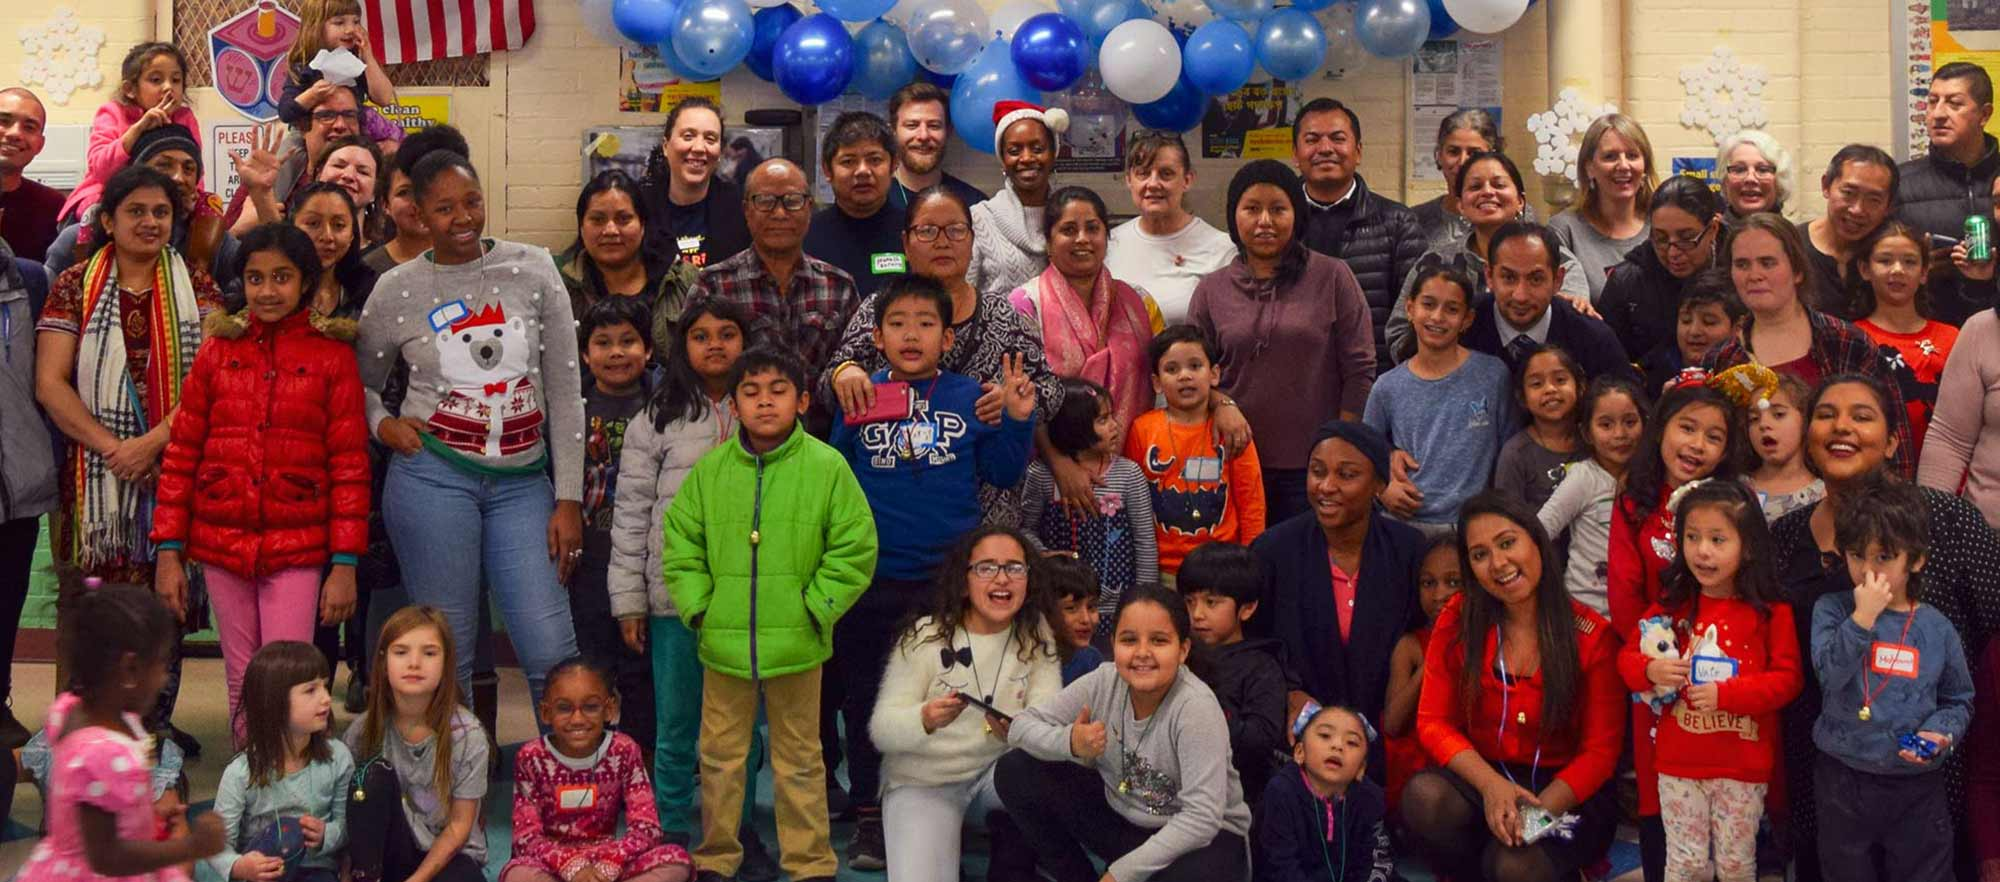 Diverse families gathering at a celebration in a classroom.